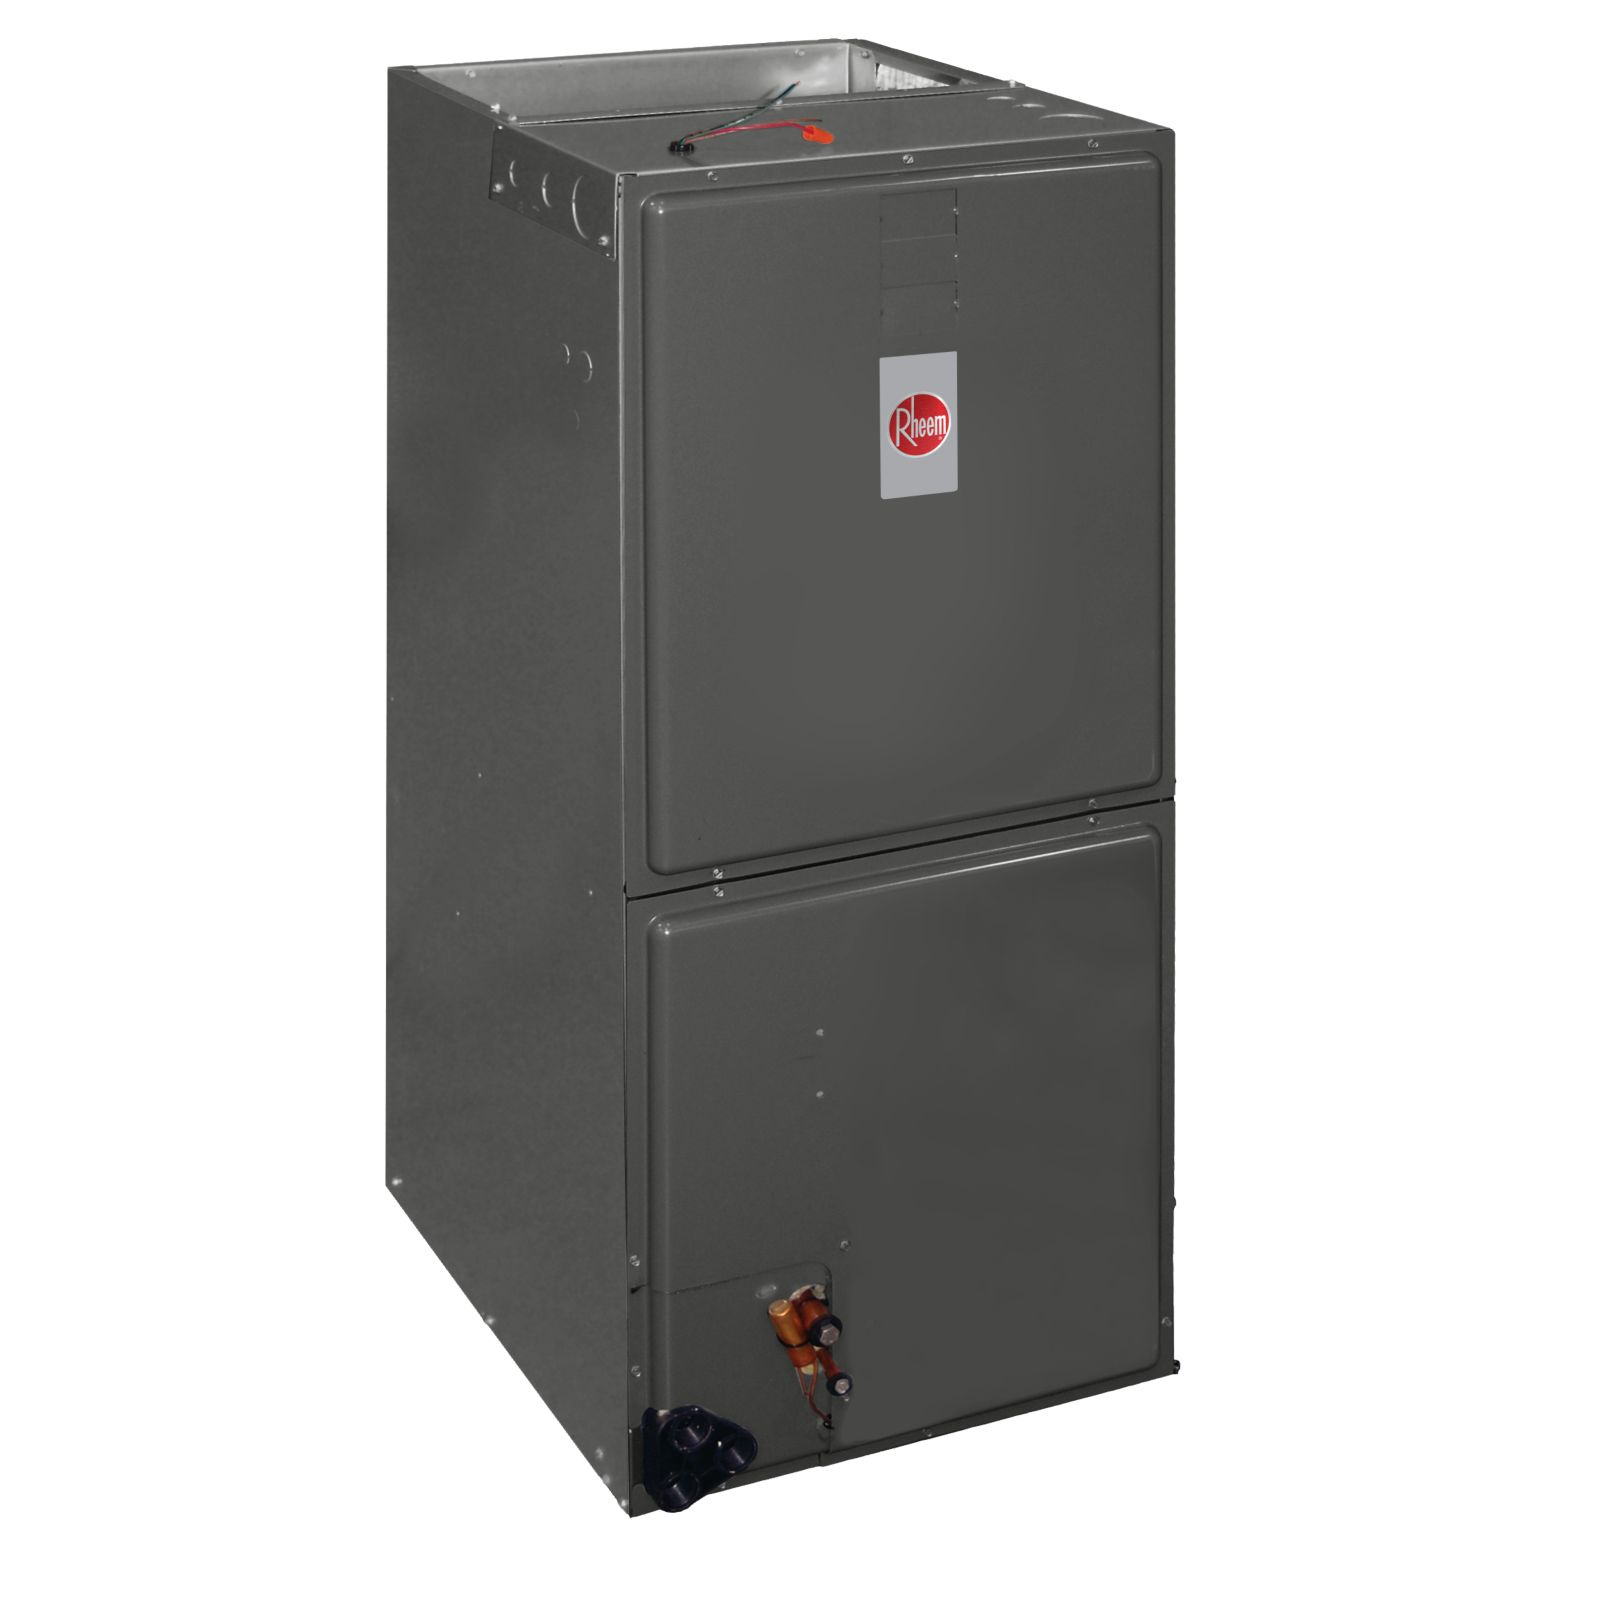 Rheem RHLL-HM3821JA - RHLL Series 3 Ton Multiposition High Efficiency Air Handler - Up to 16 SEER - R410A - X13 (ECM) Motor